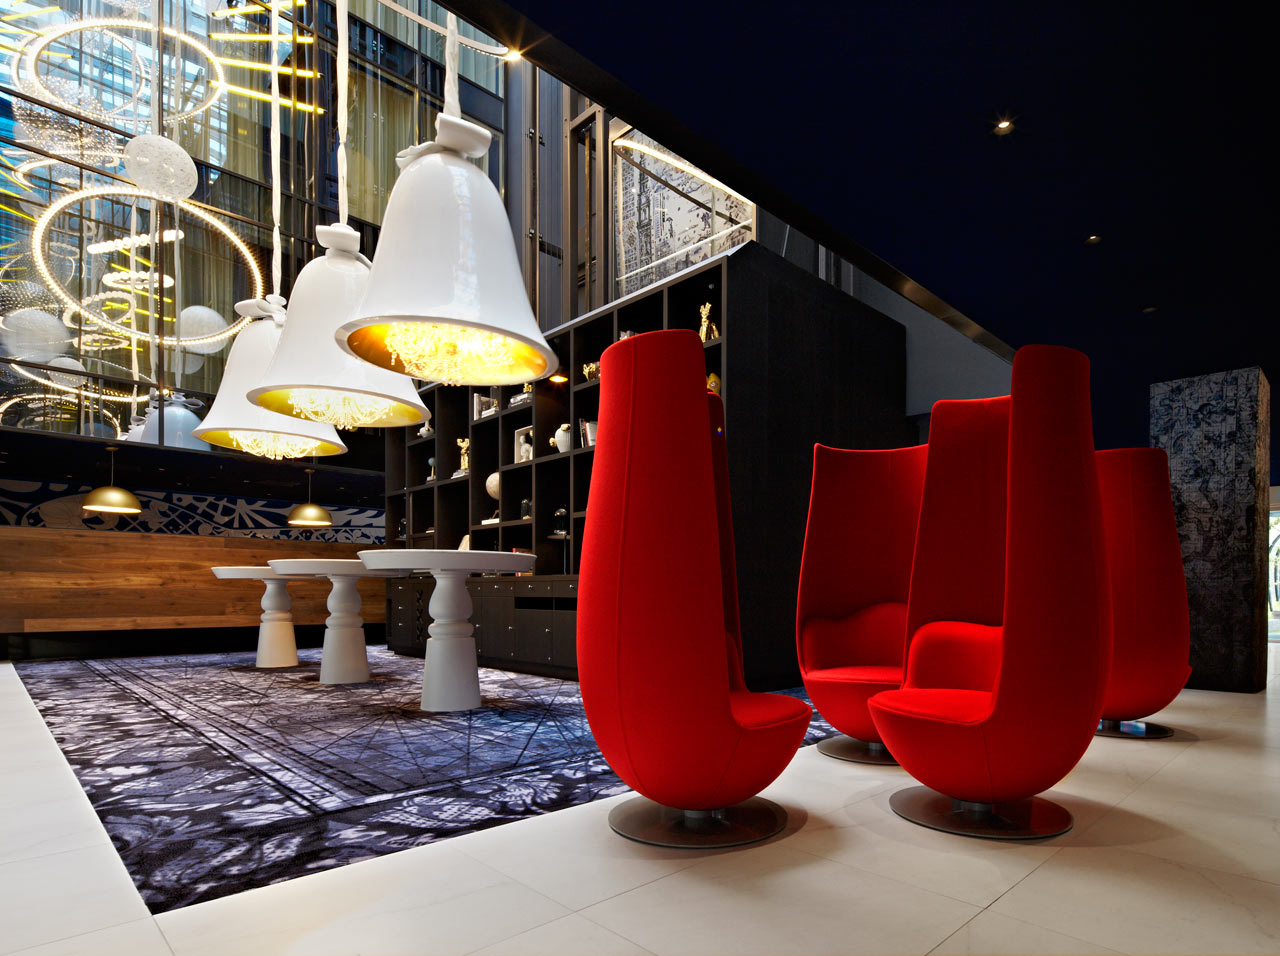 A Modern Hotel in Amsterdam with Dutch History